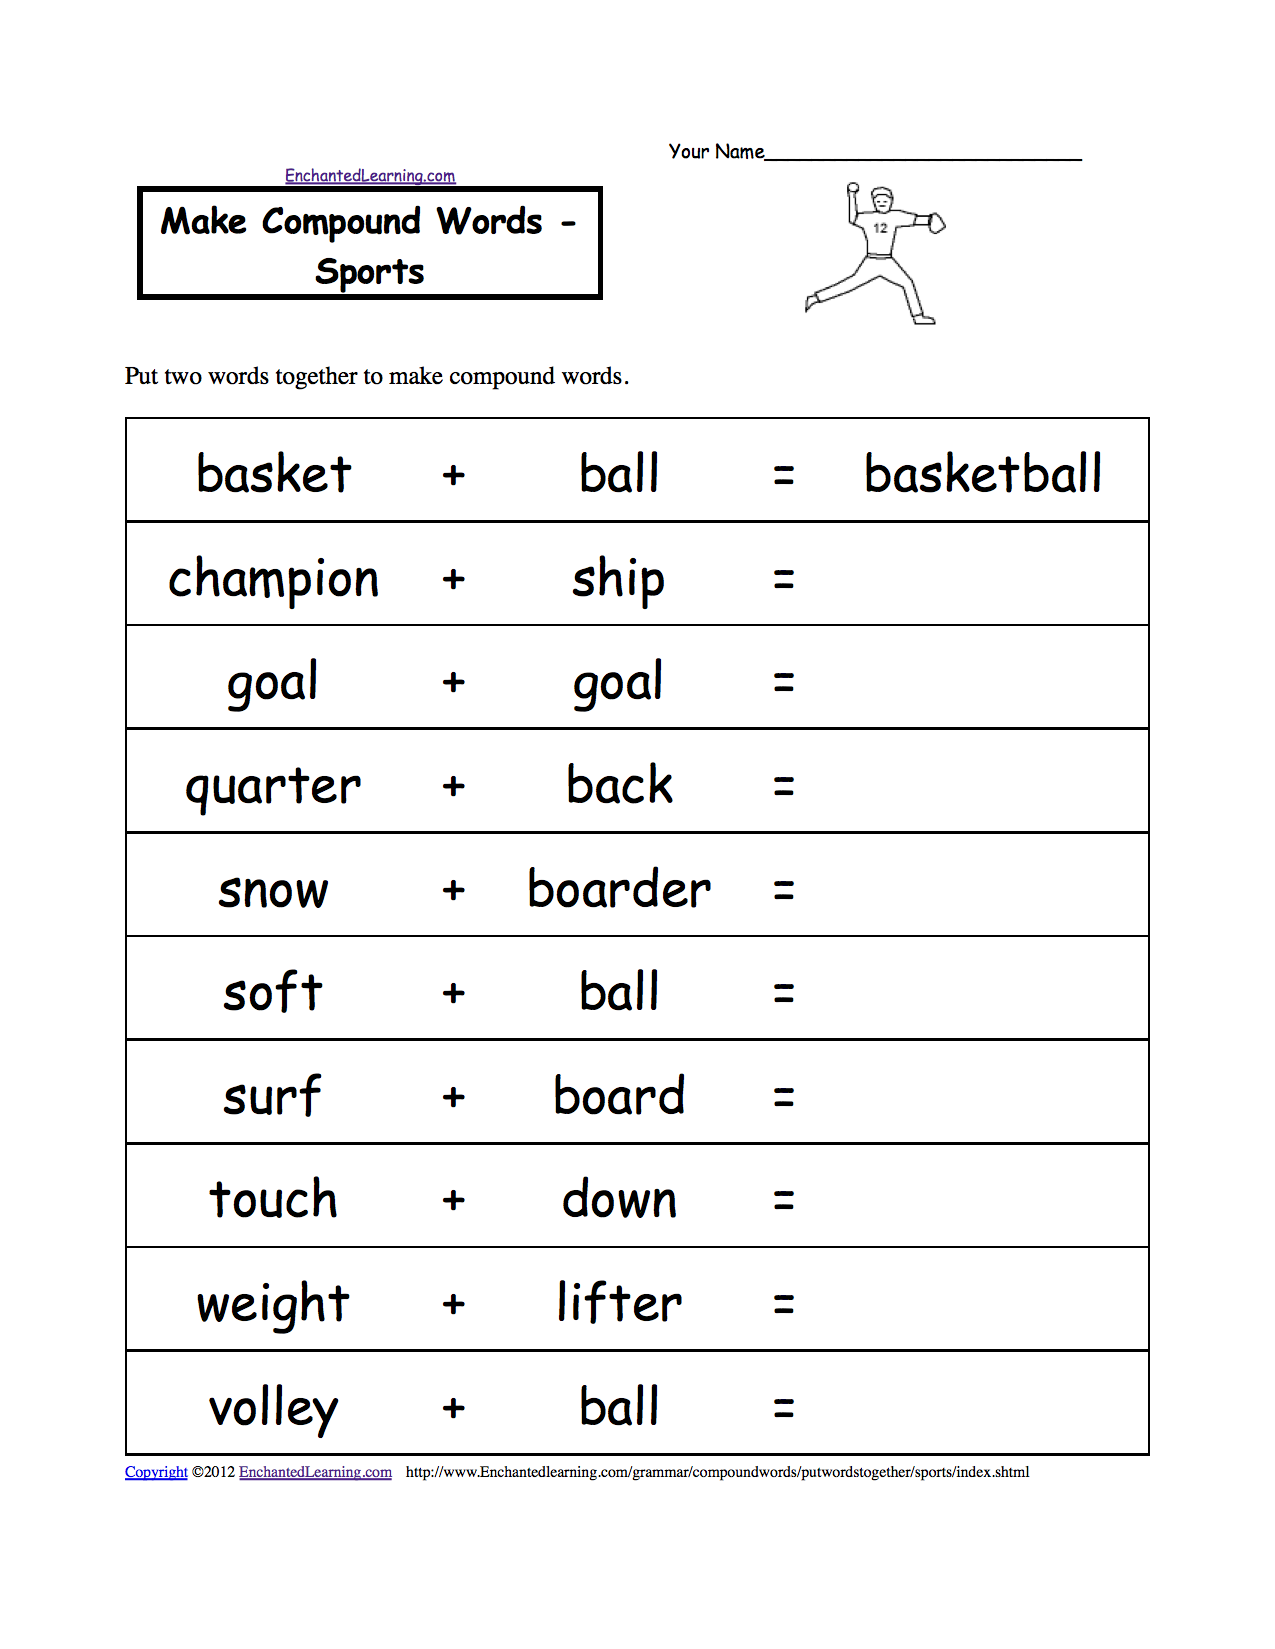 worksheet Analogies Worksheet spelling worksheets sports at enchantedlearning com make compound words